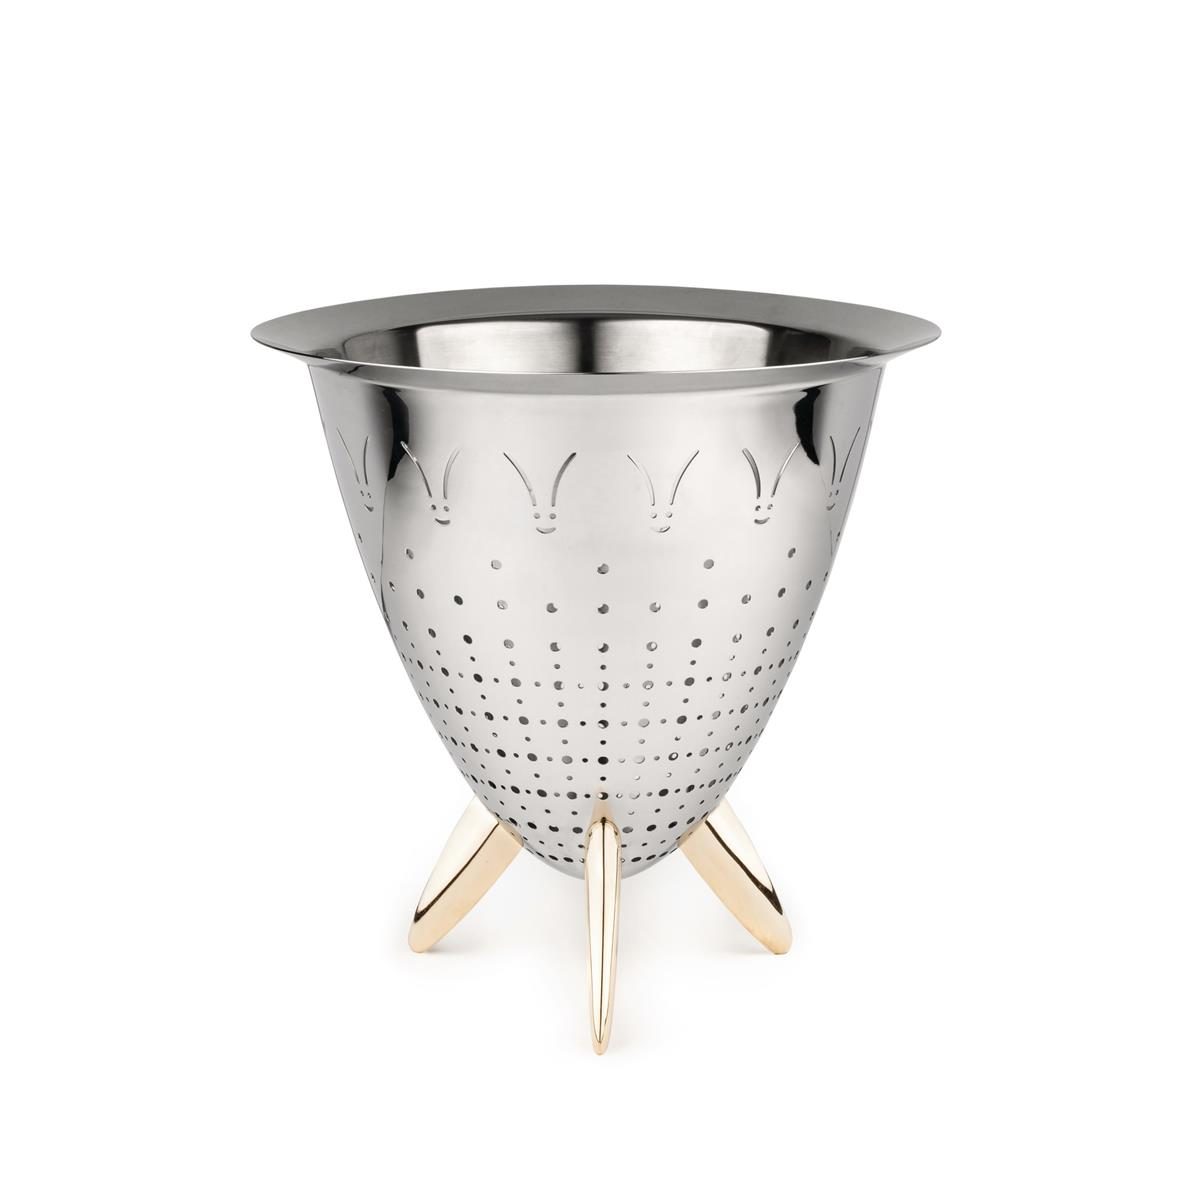 Alessi-Max le chinois Colander in 18/10 stainless steel